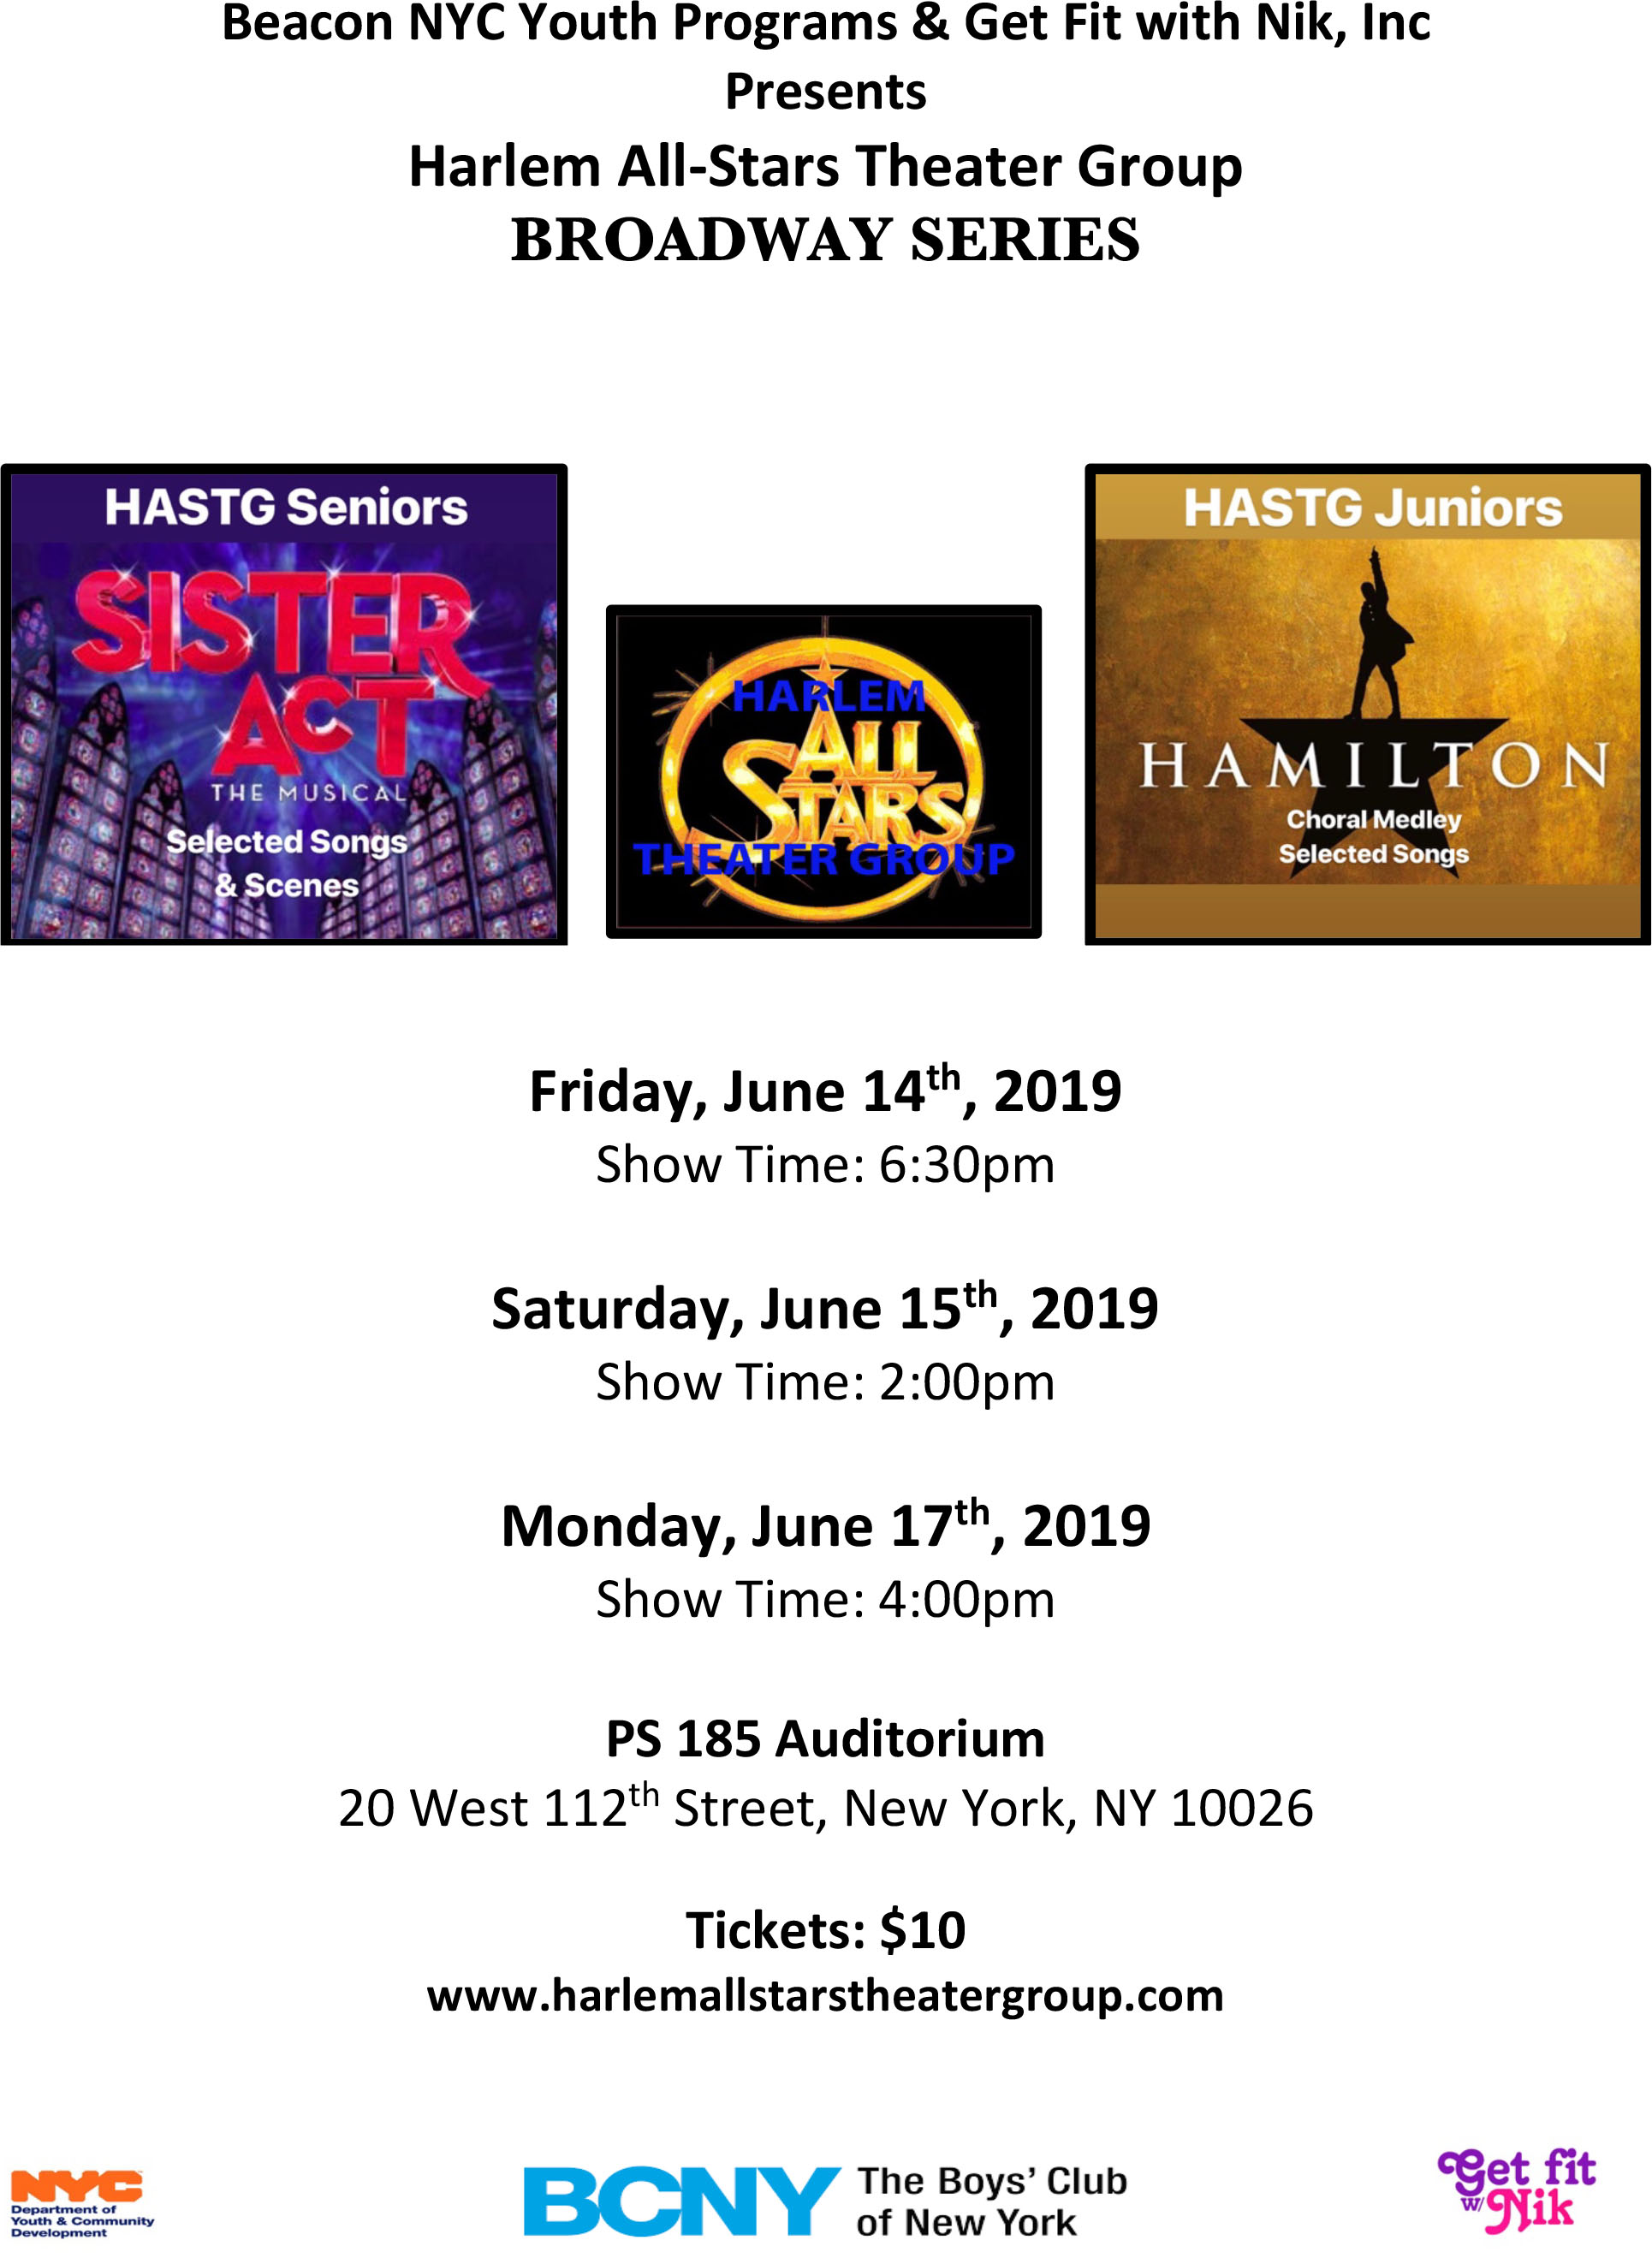 Harlem All-Stars Theater Group Broadway Series